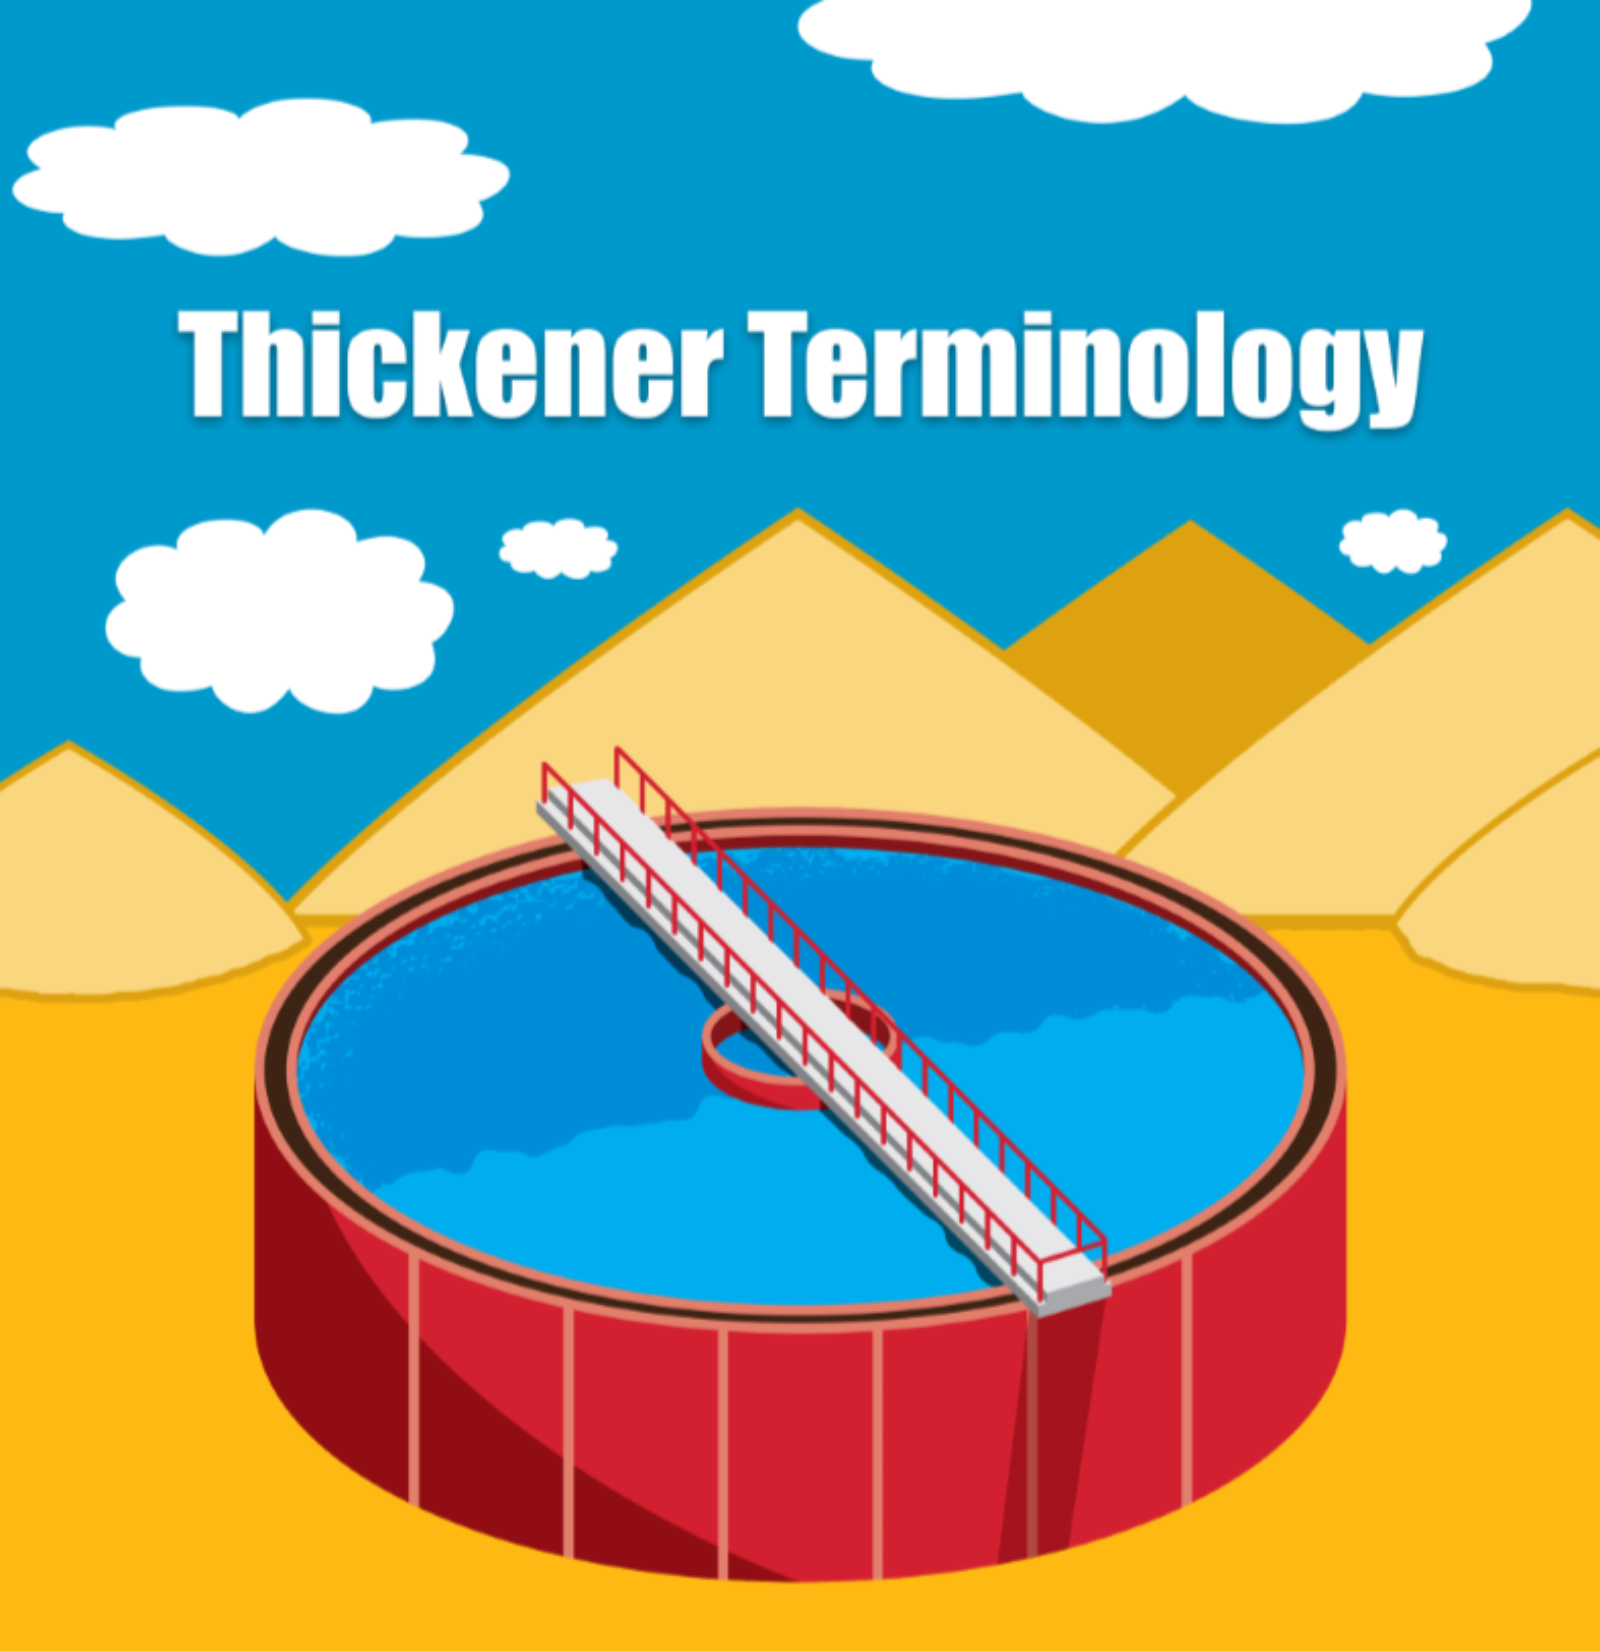 Thickener Terminology Featured